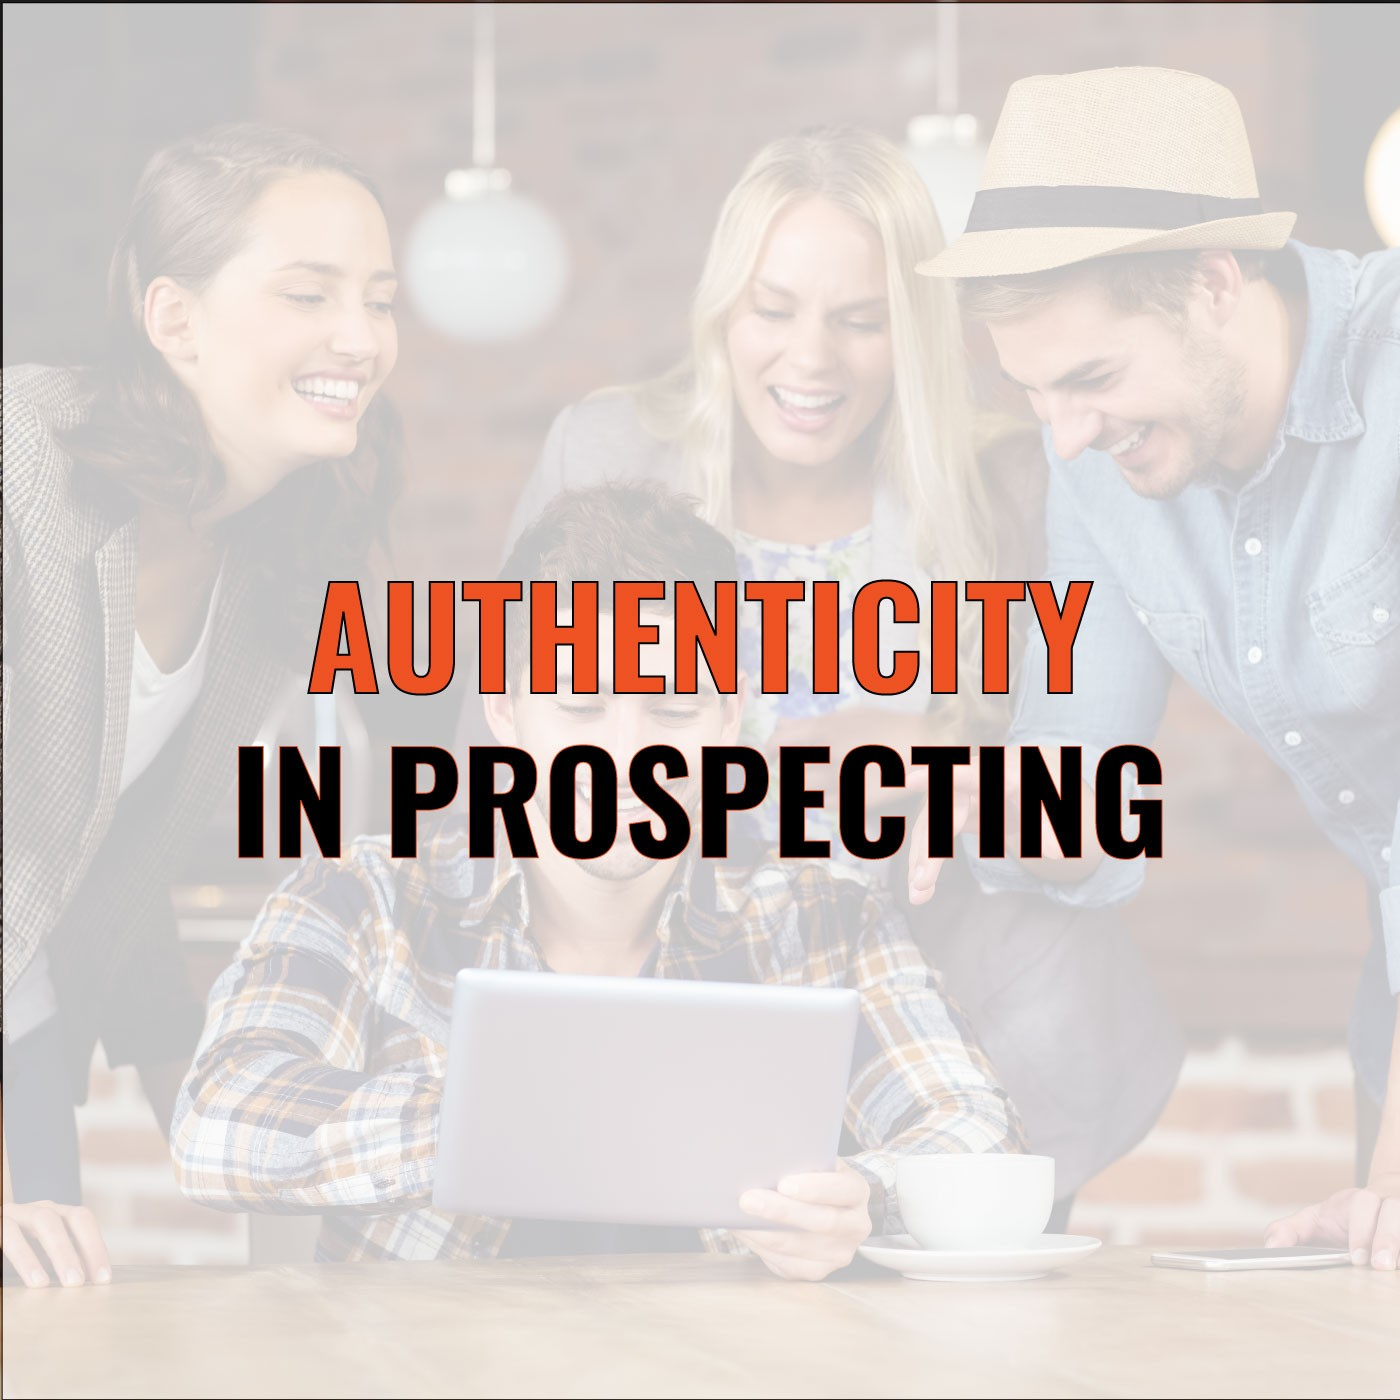 Gerard Compte on Authenticity in Prospecting